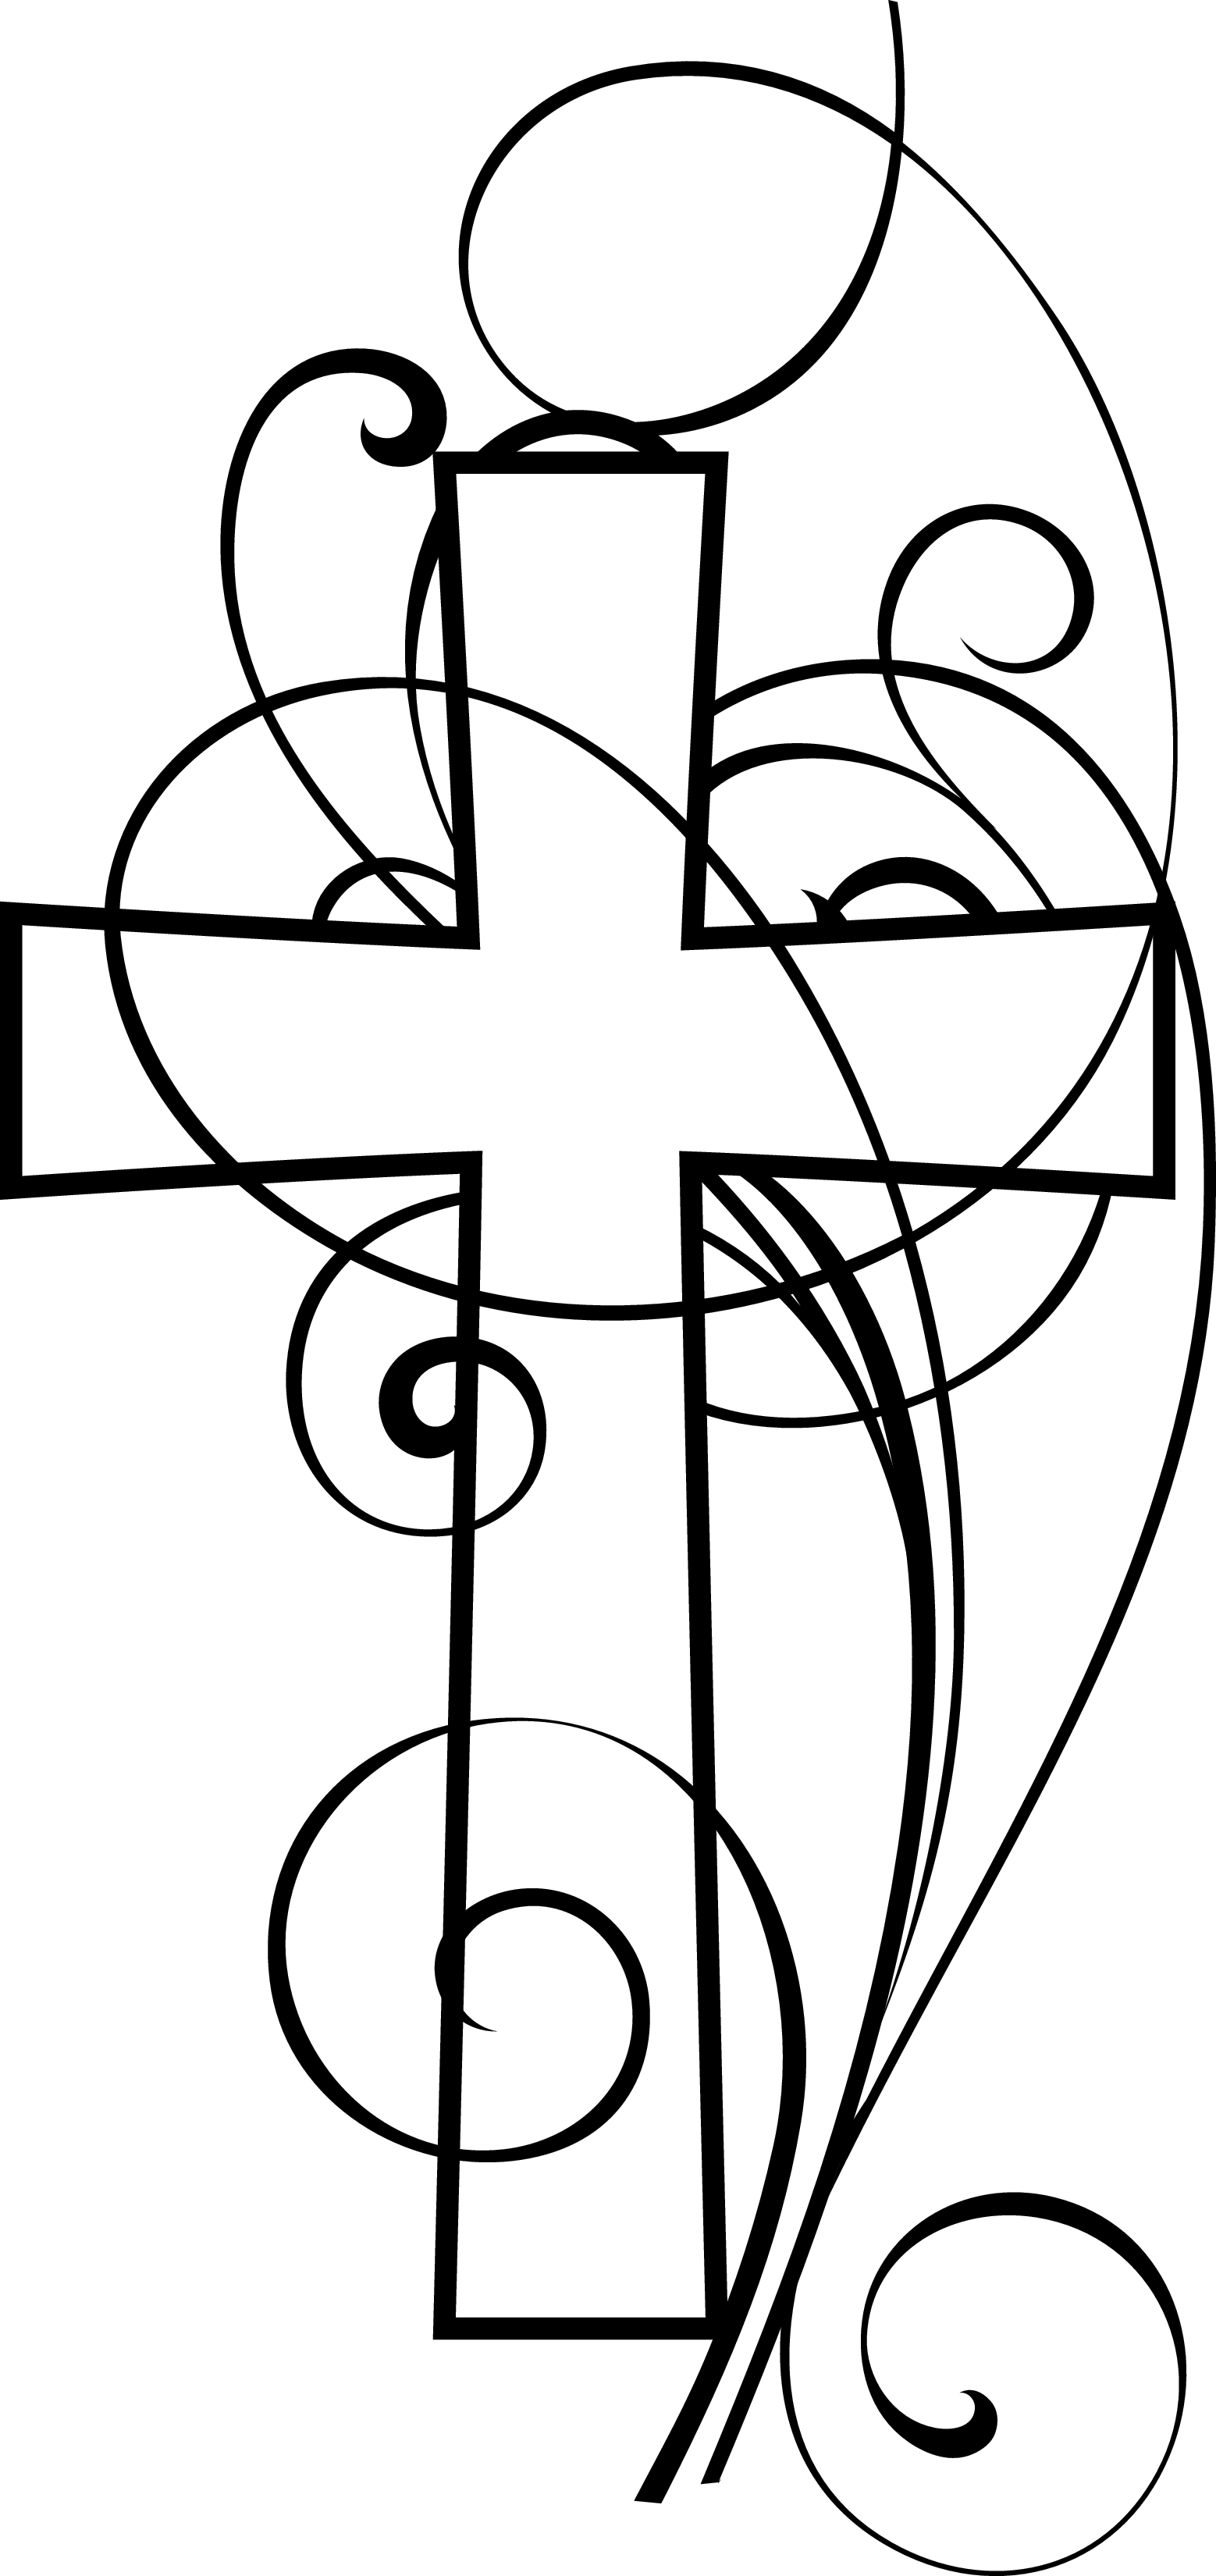 Cross Clipart Black And White Clipart Panda